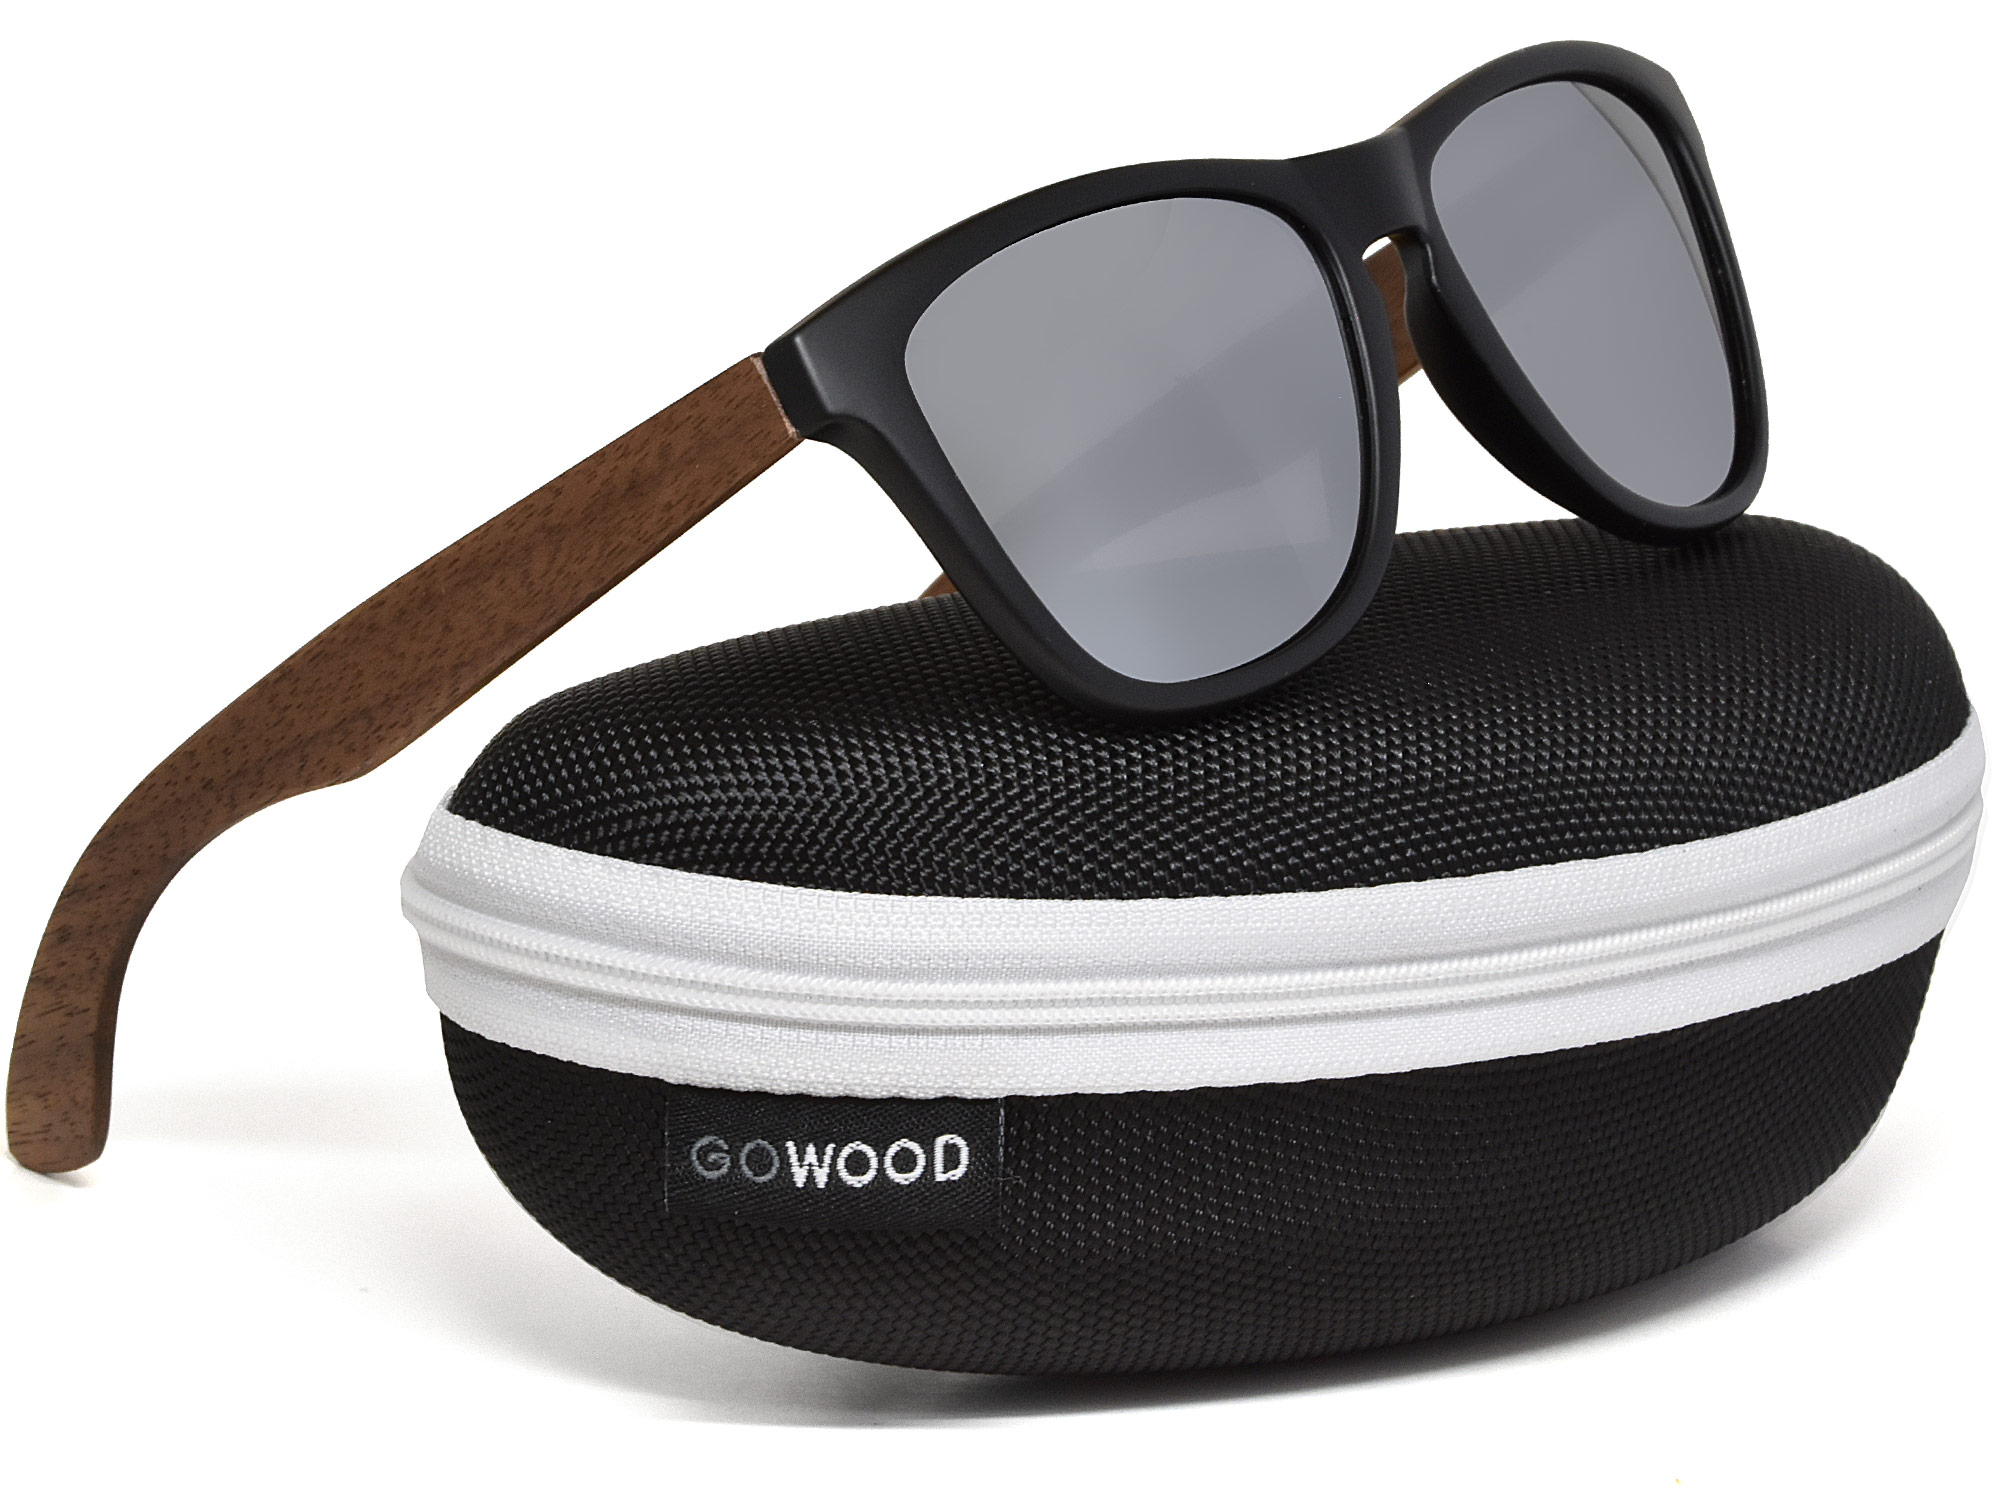 Classic walnut wood sunglasses with silver mirrored polarized lenses in a zipper case